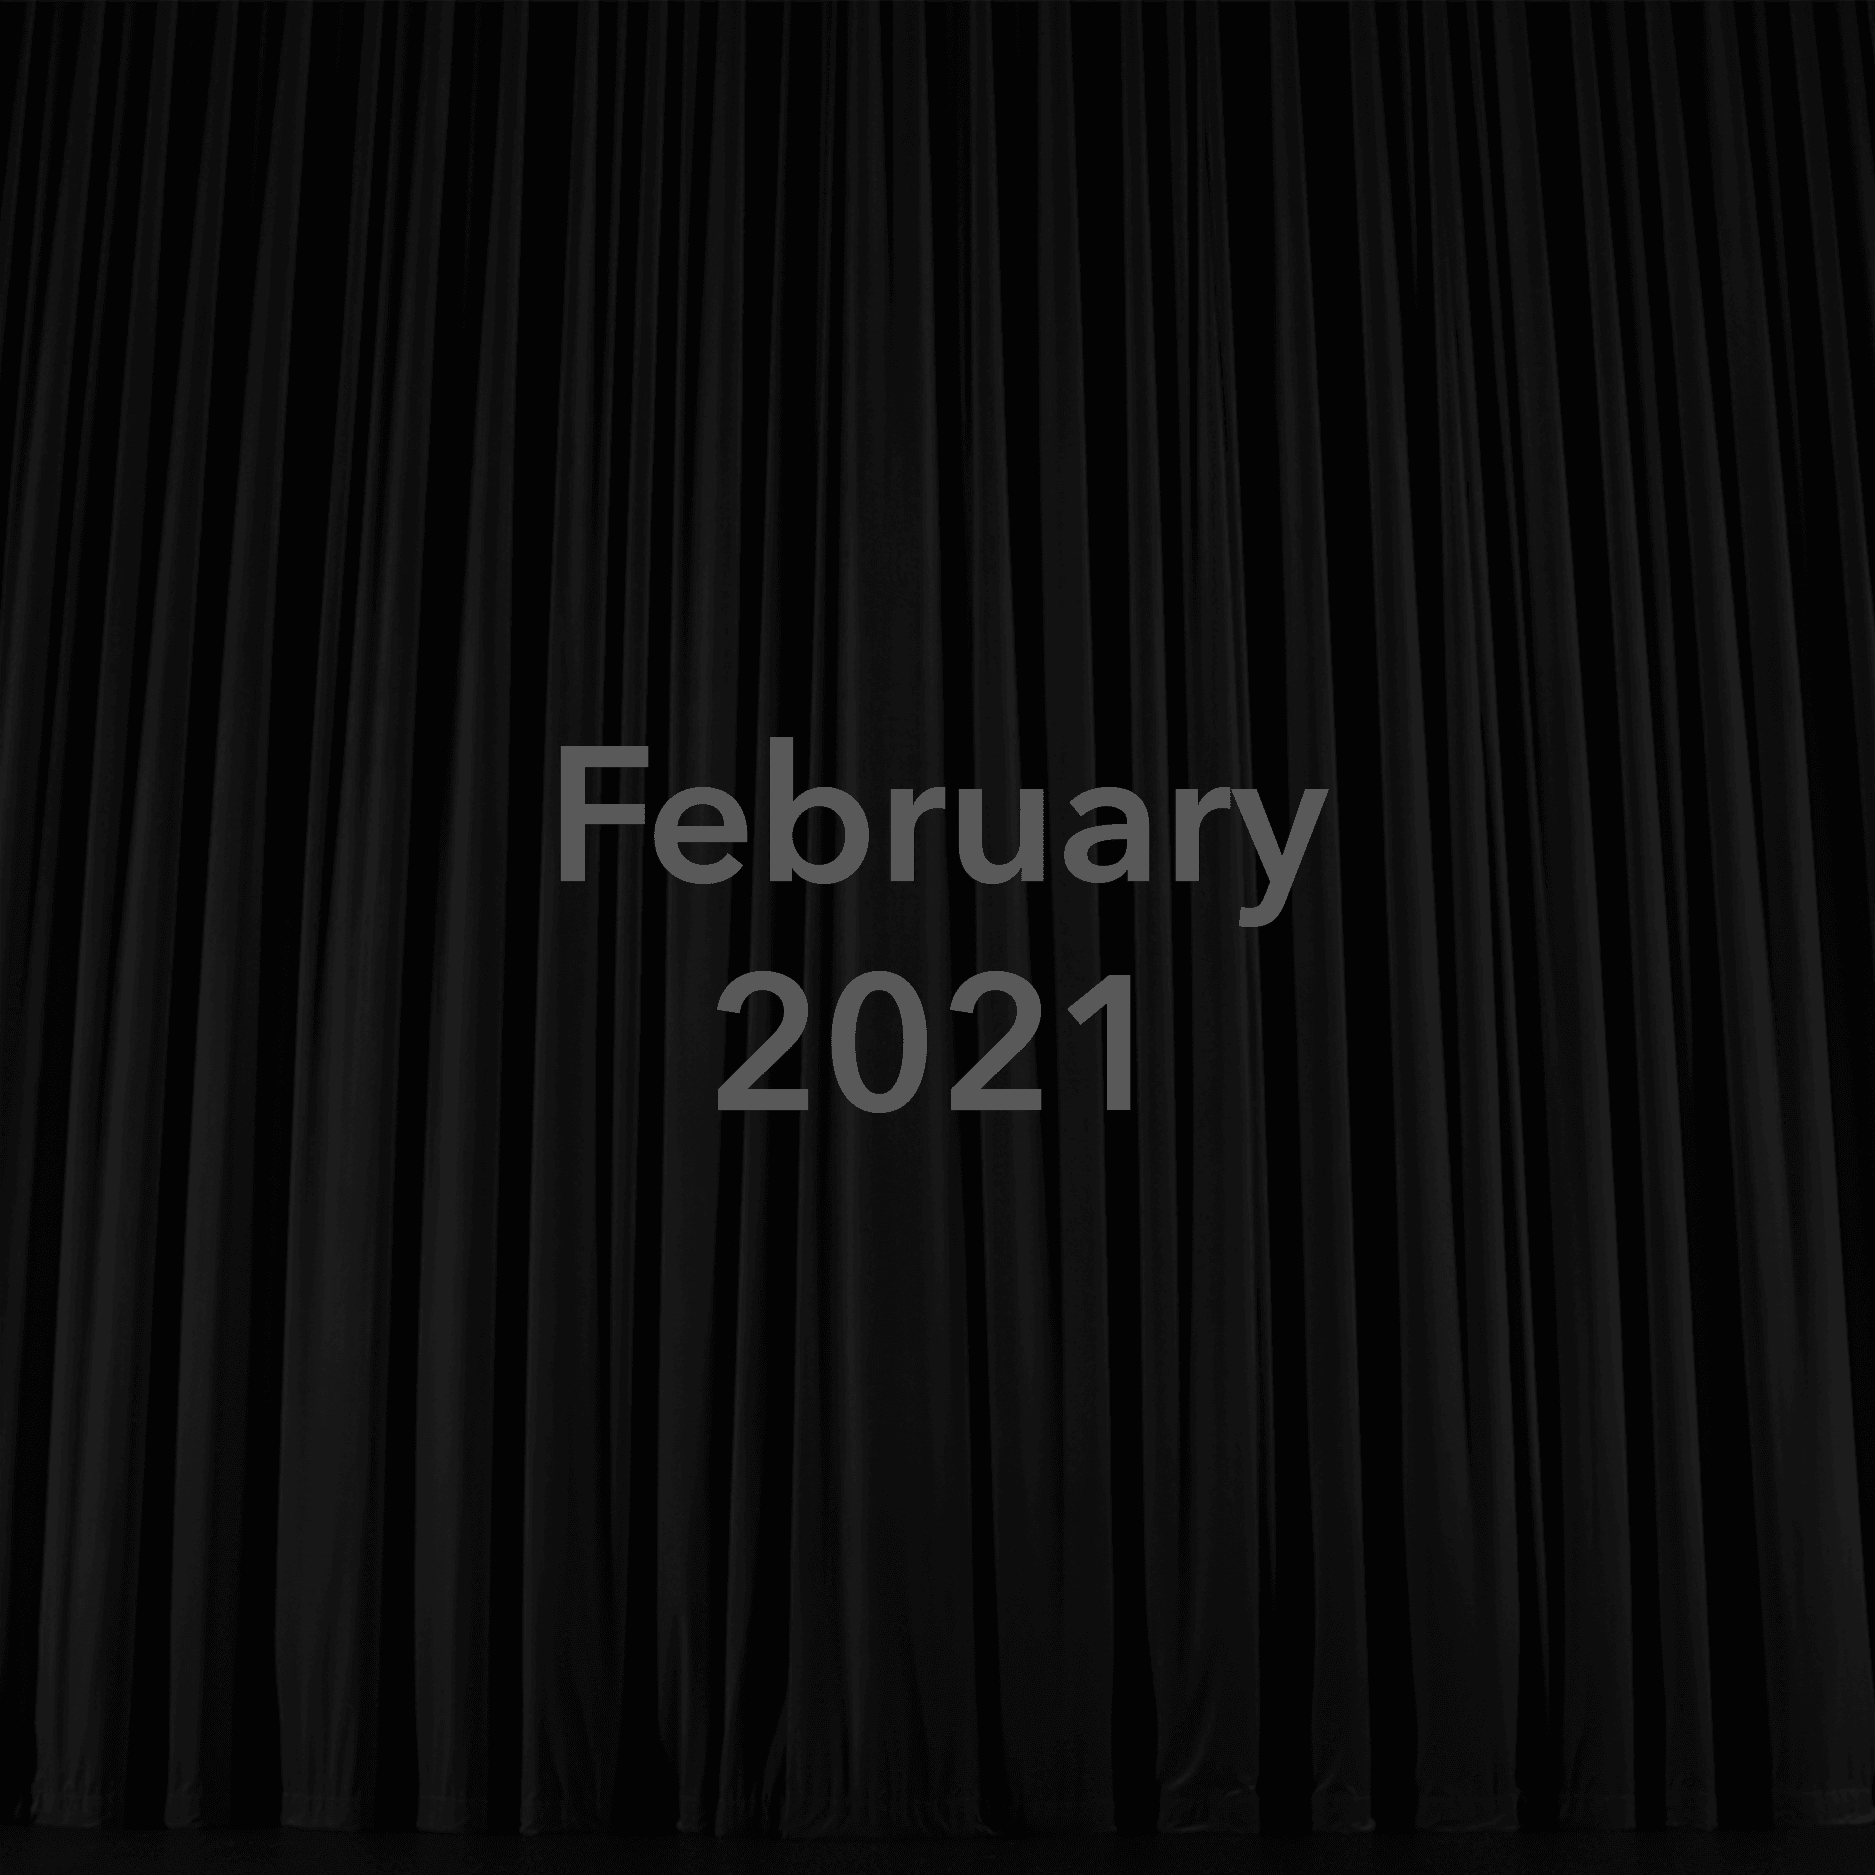 February 2021 Show Placeholder